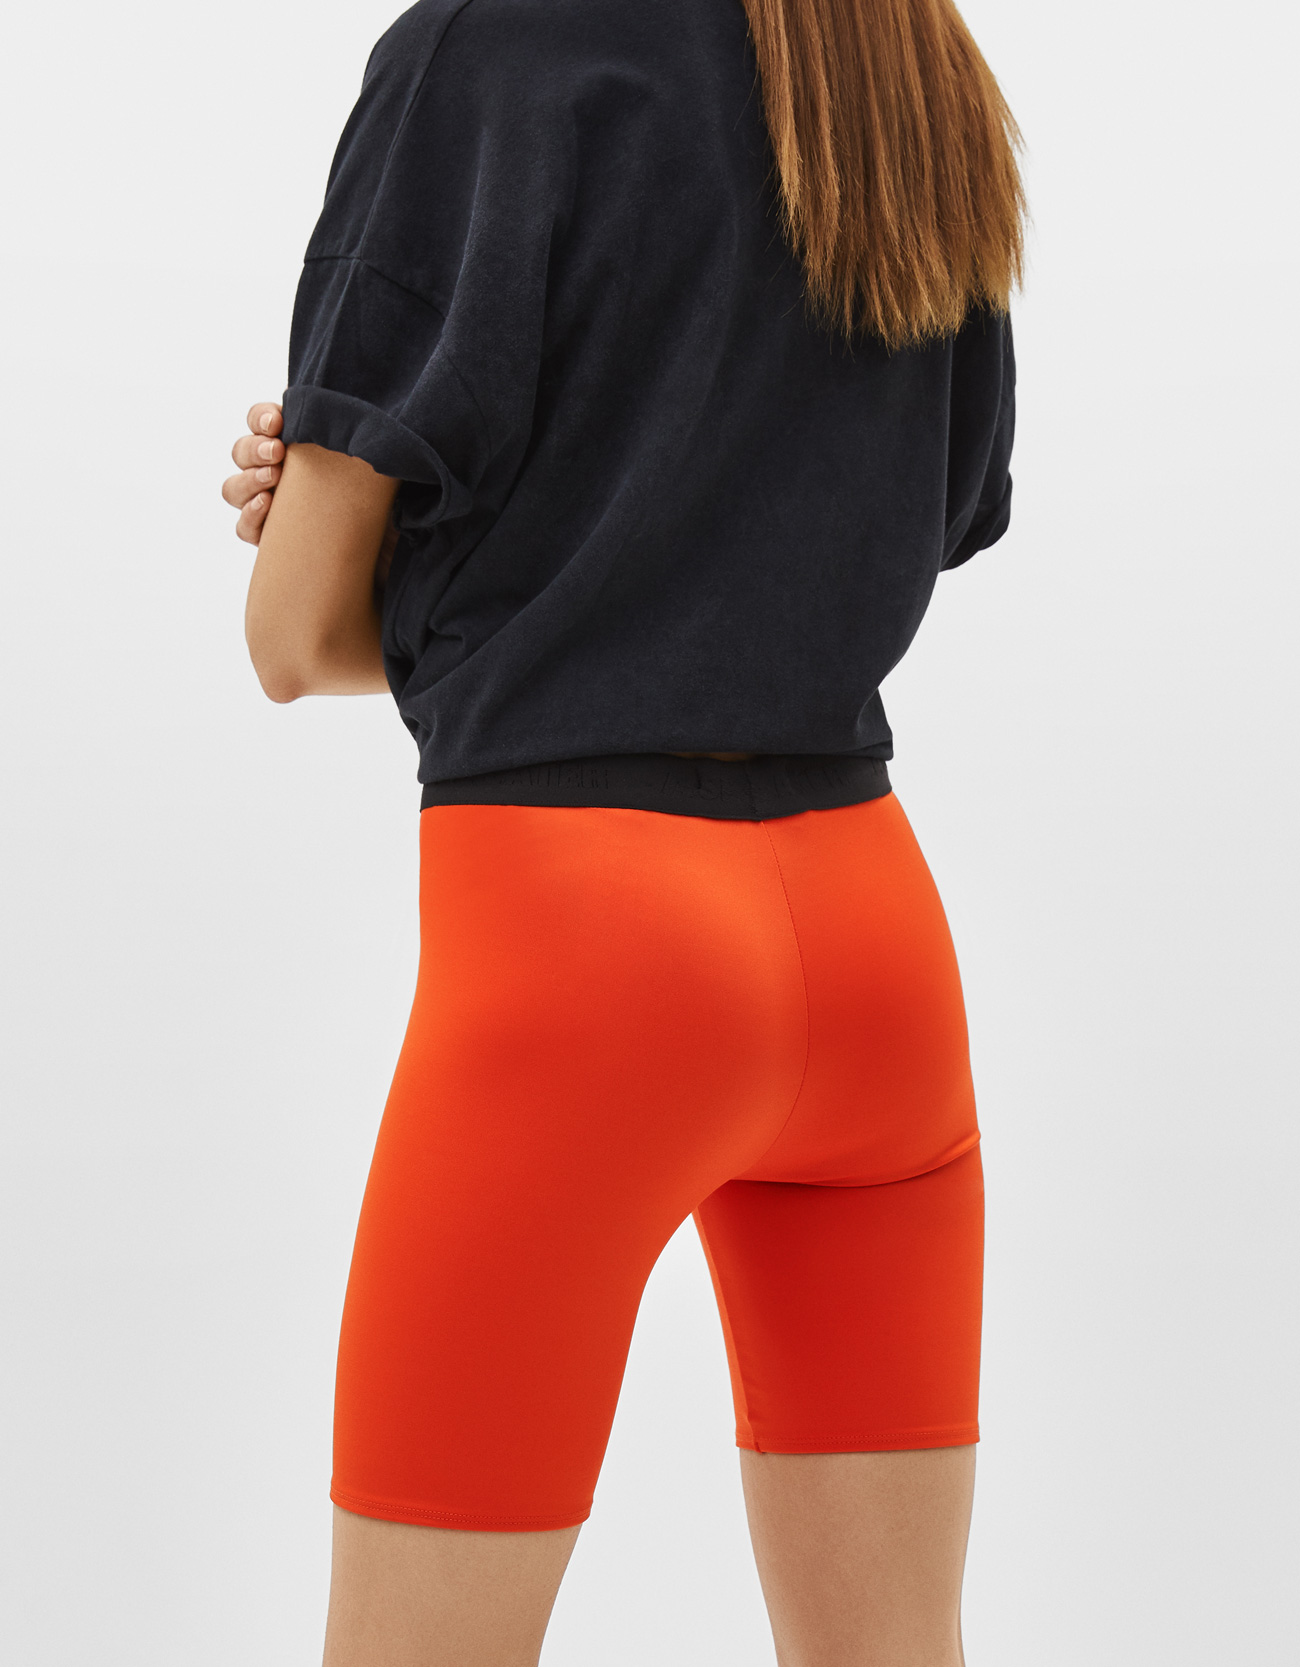 90ebafcb4136a Cycling leggings with slogan